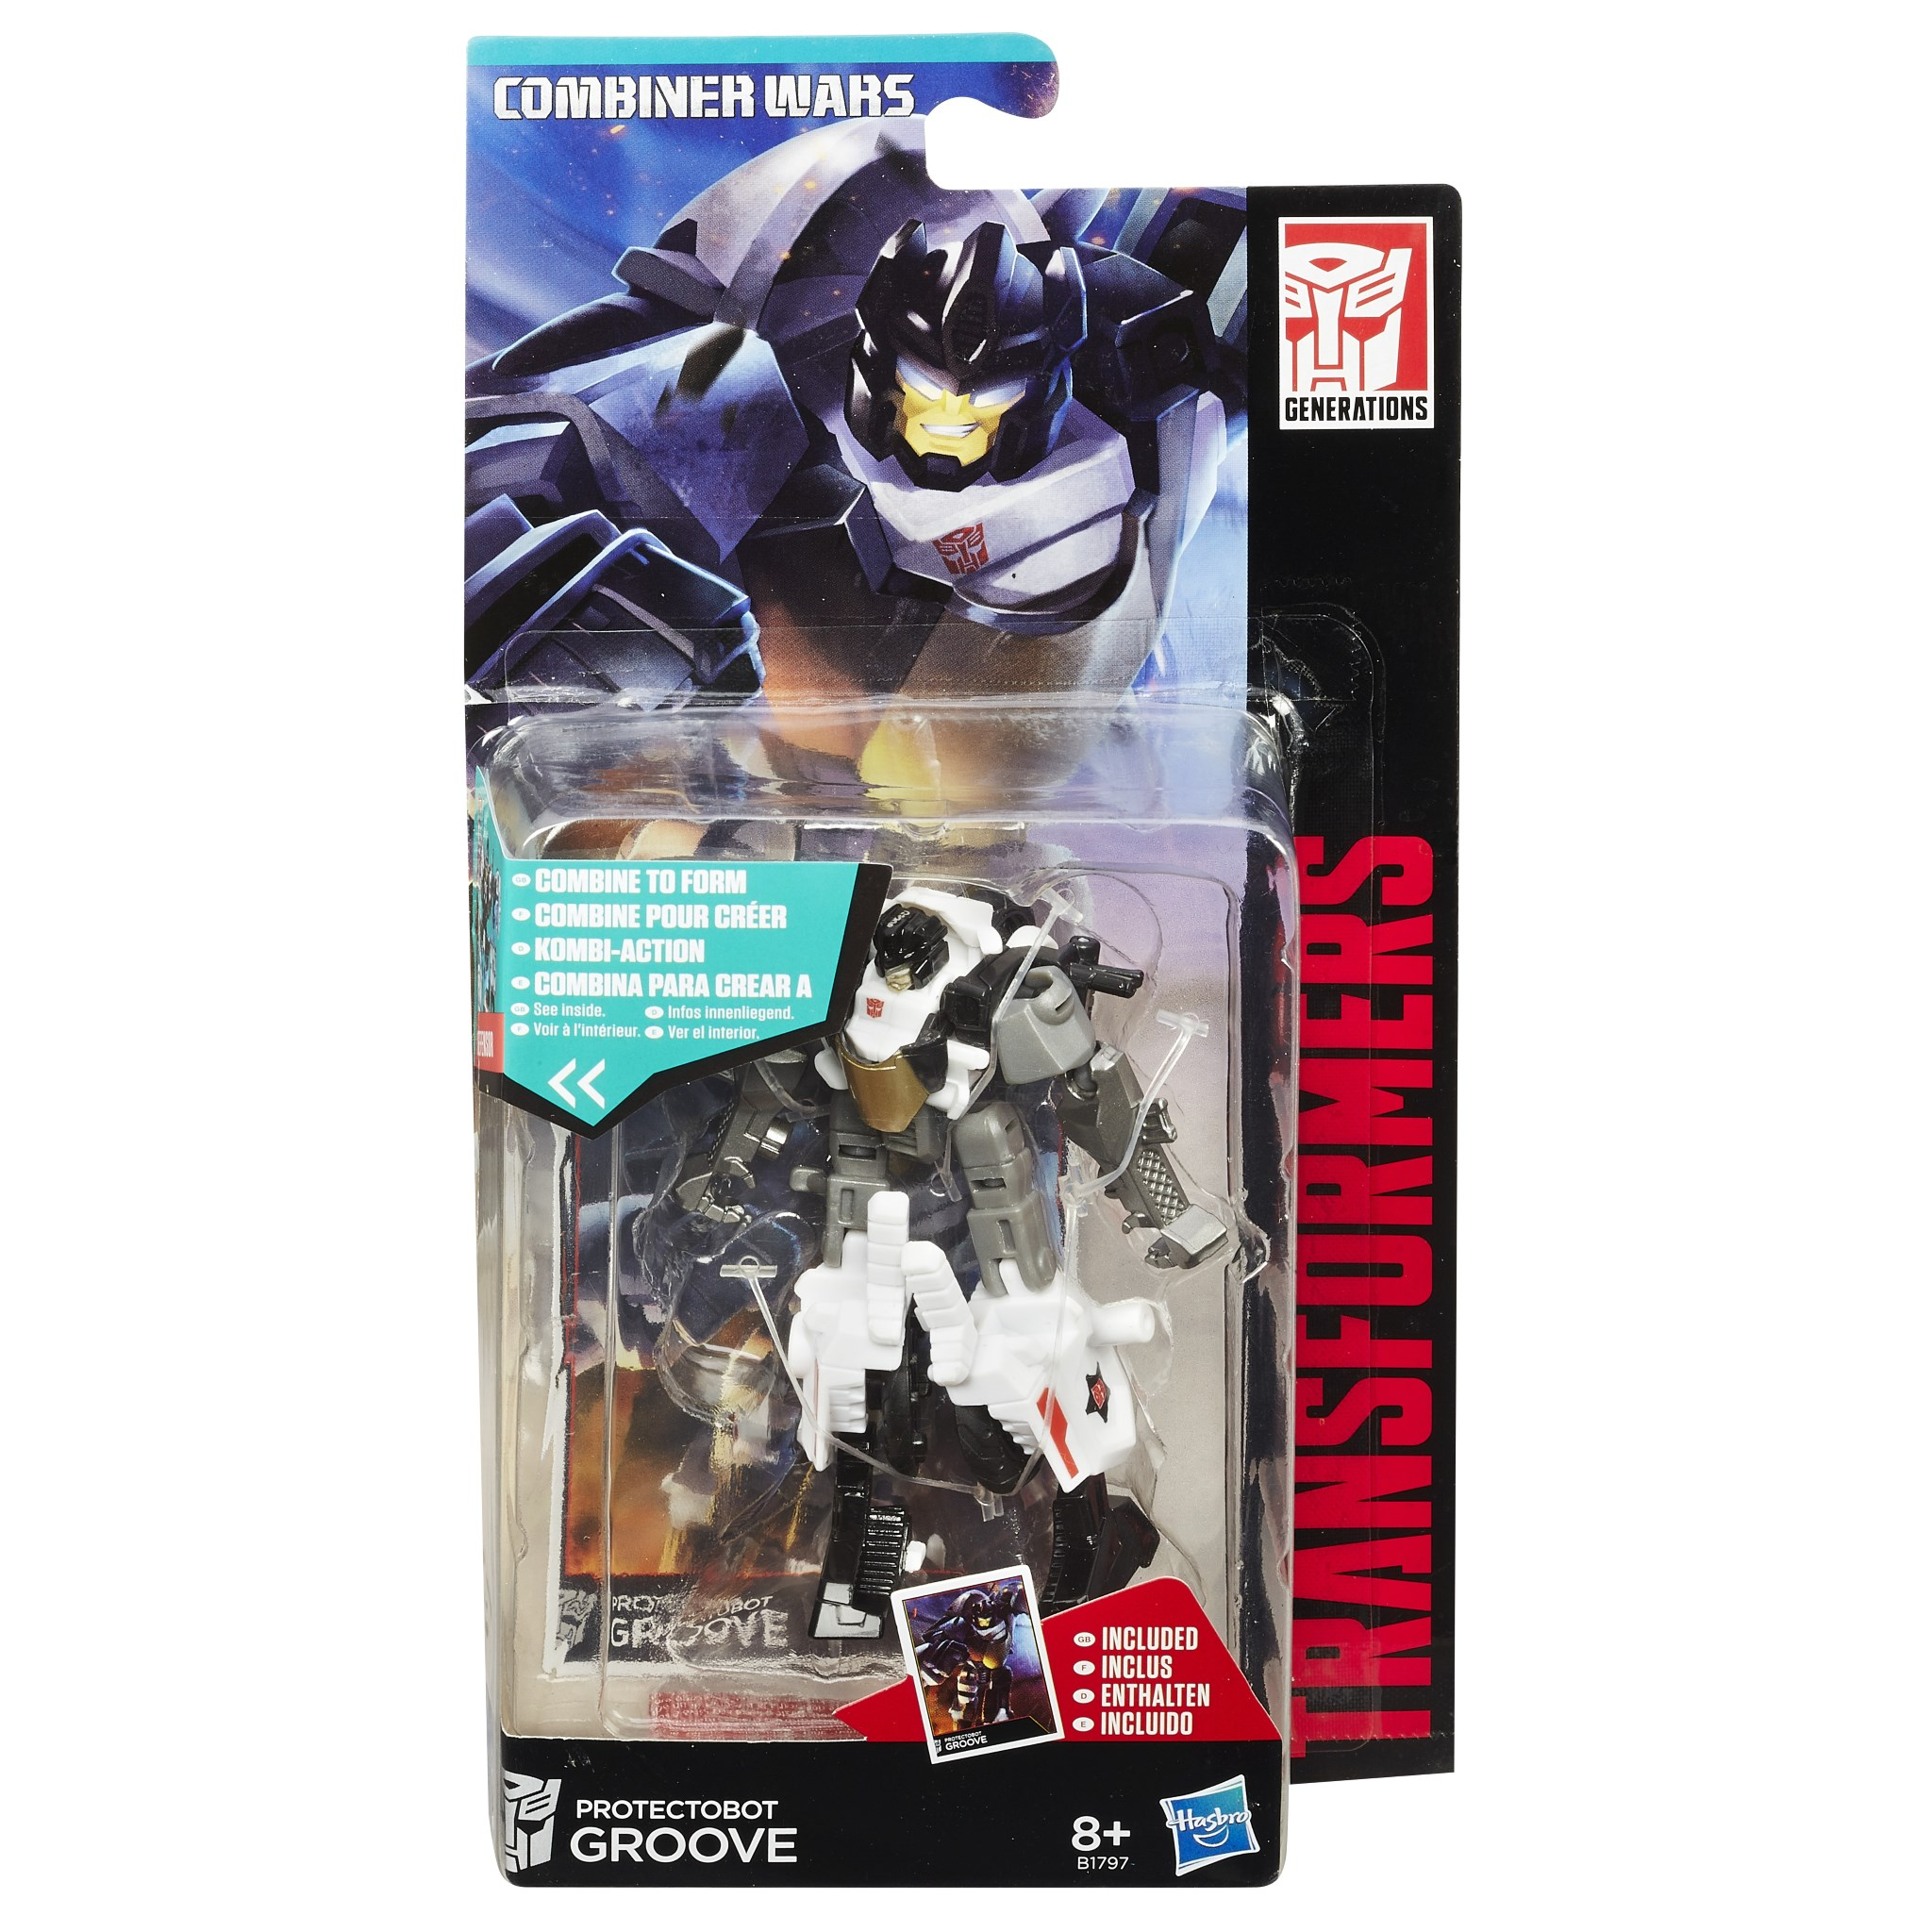 Transformers Generations Combiner Wars Legends Groove